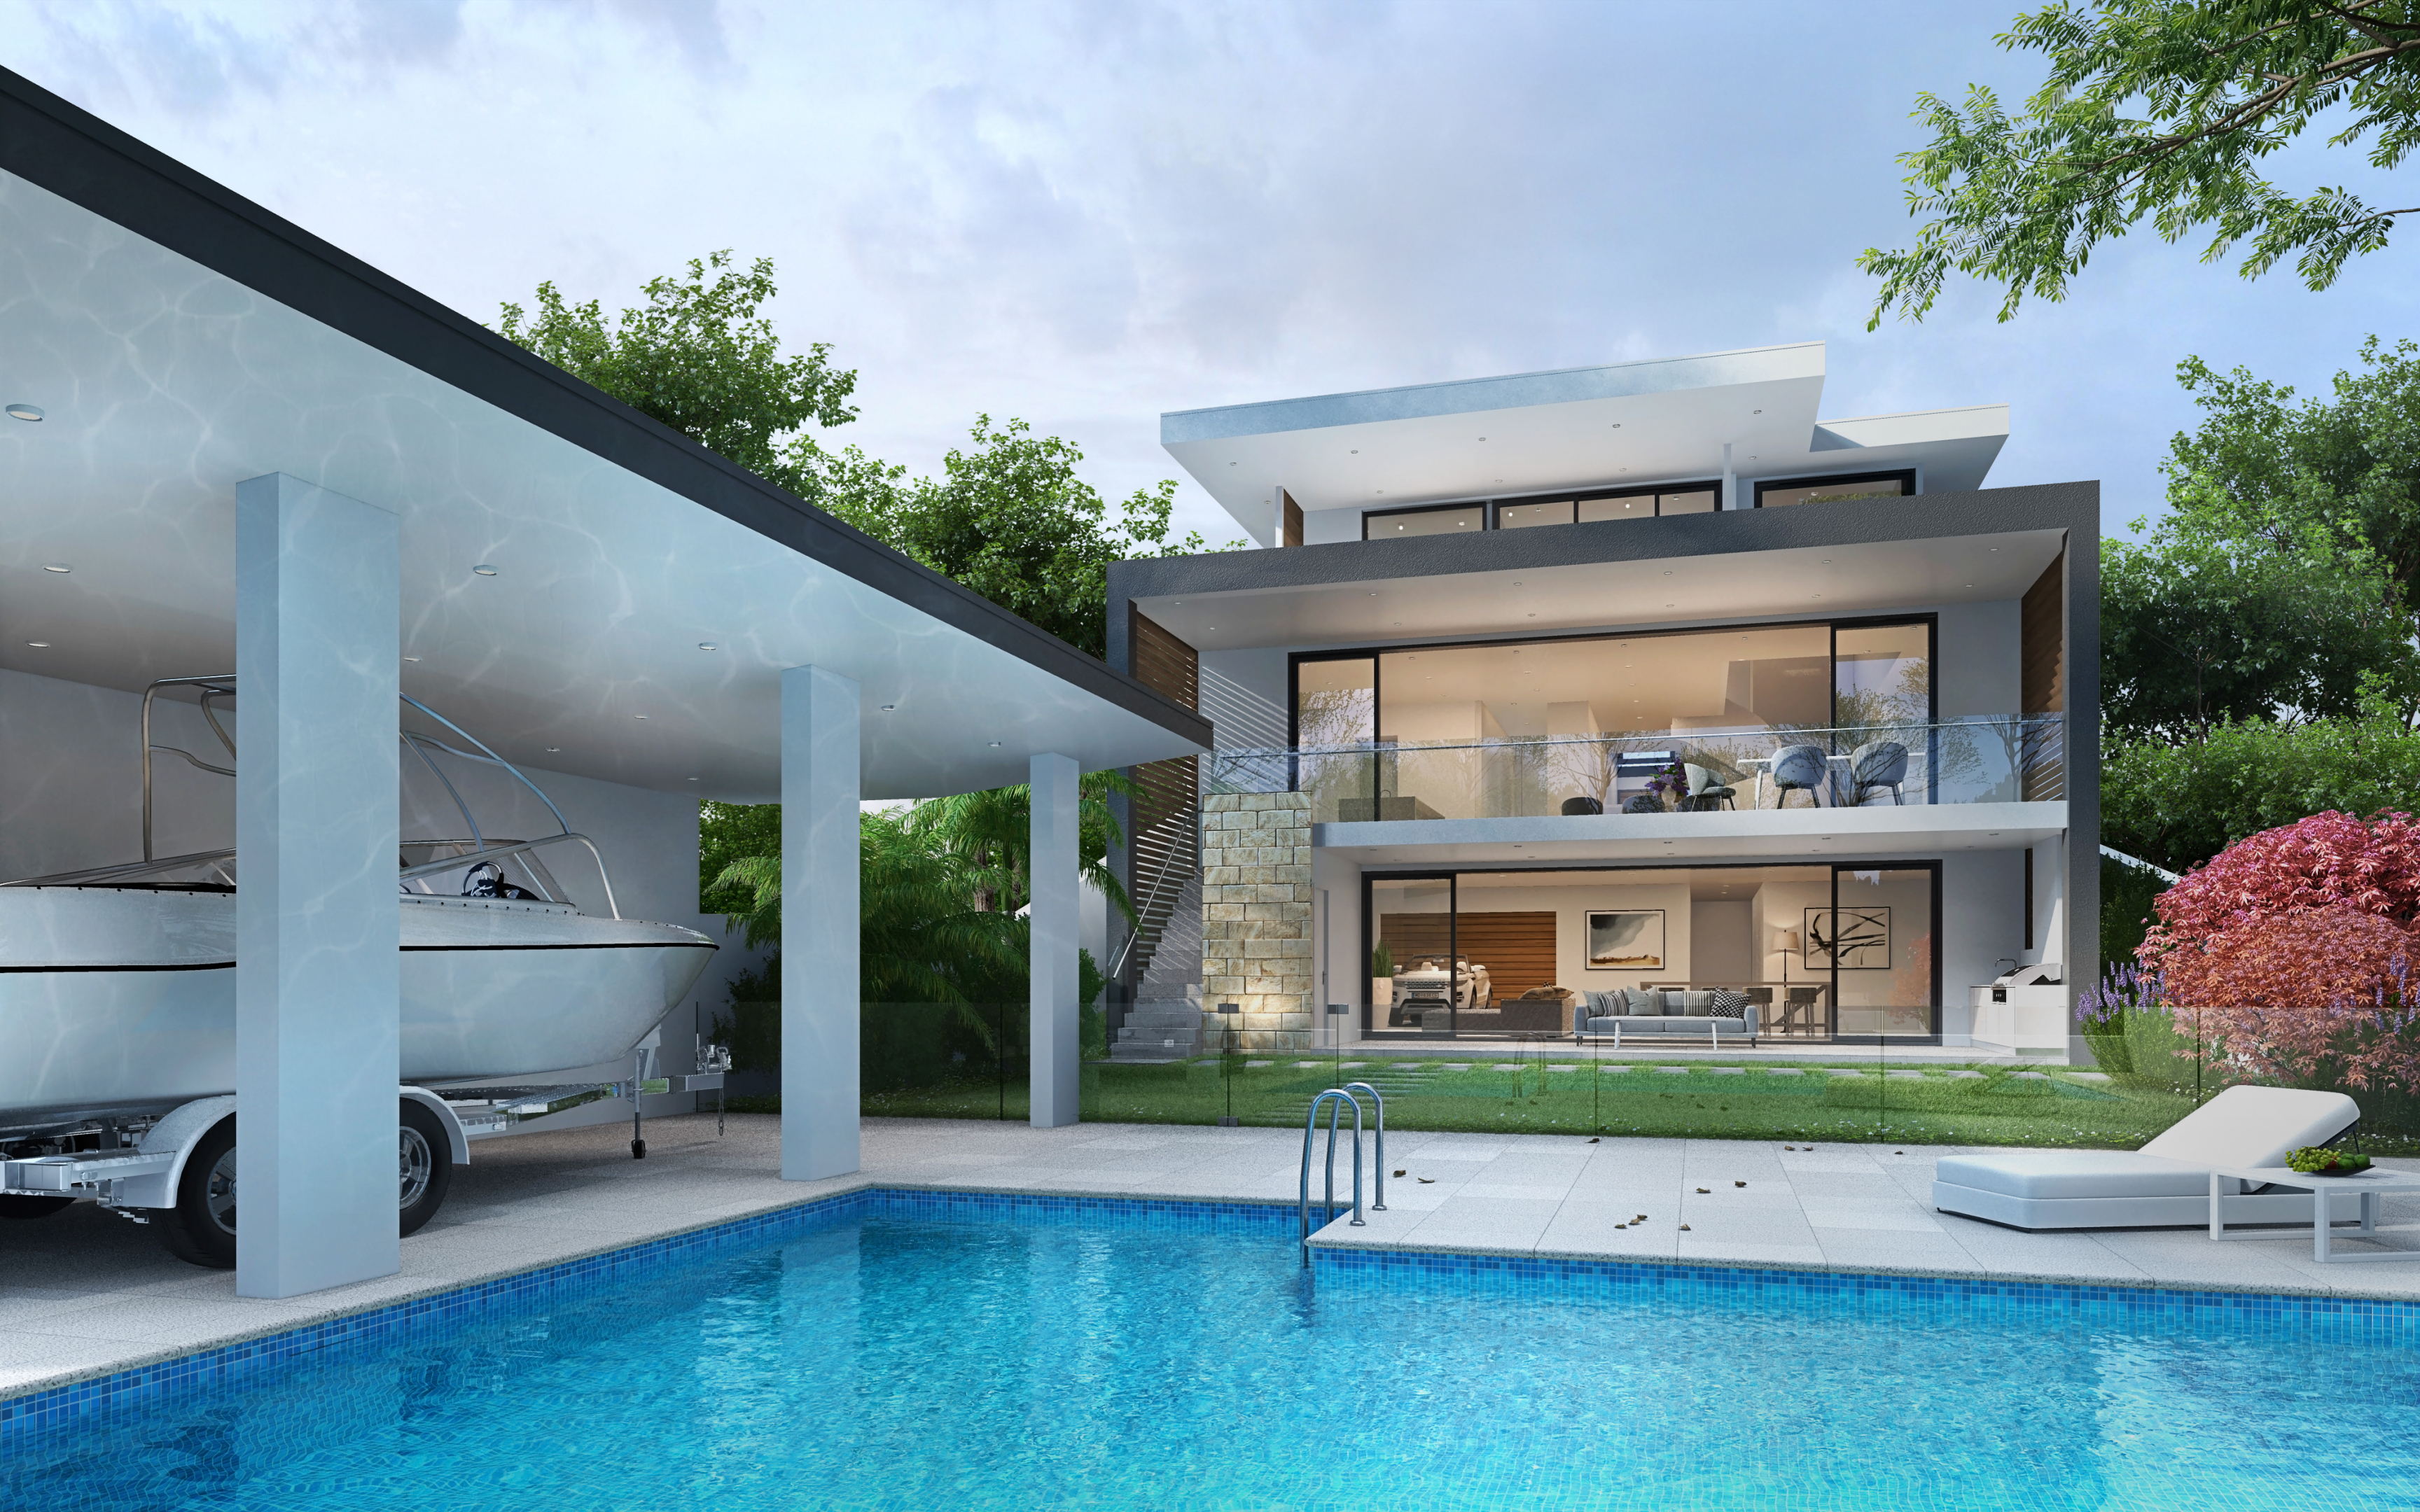 for your eyes only in 3d max vray 3.0 image